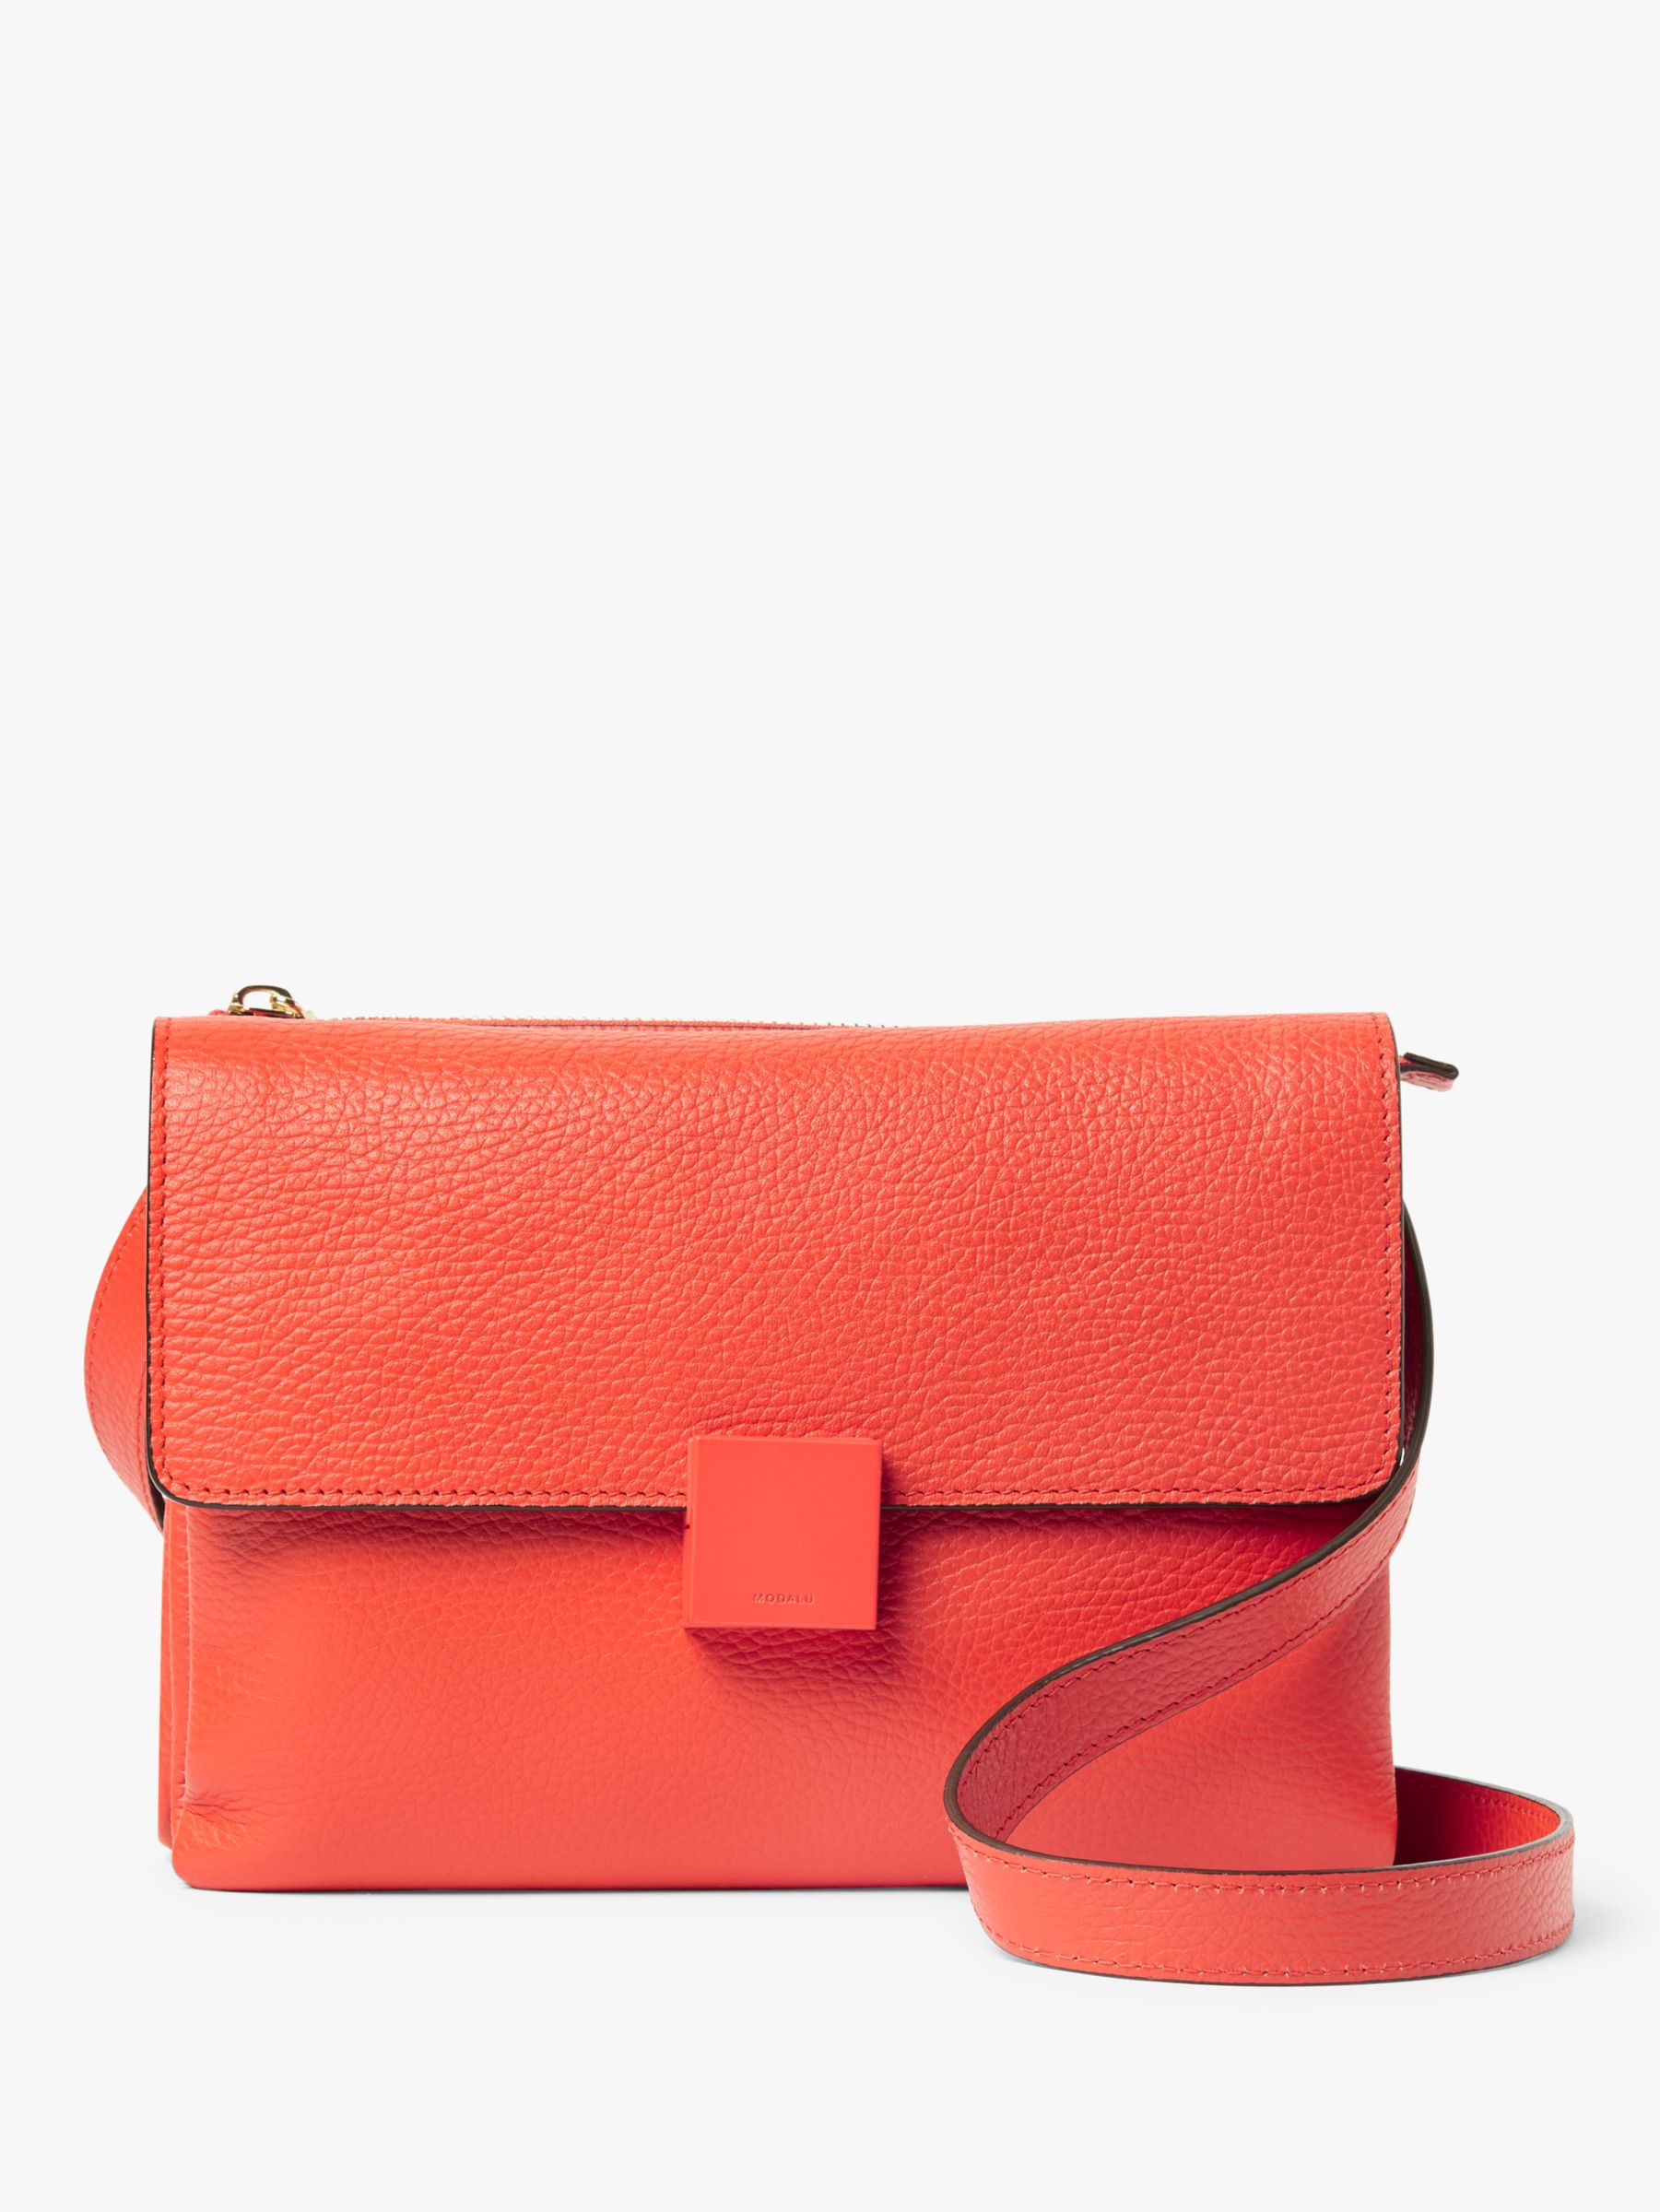 Modalu Modalu Maya Cross Body Leather Bag